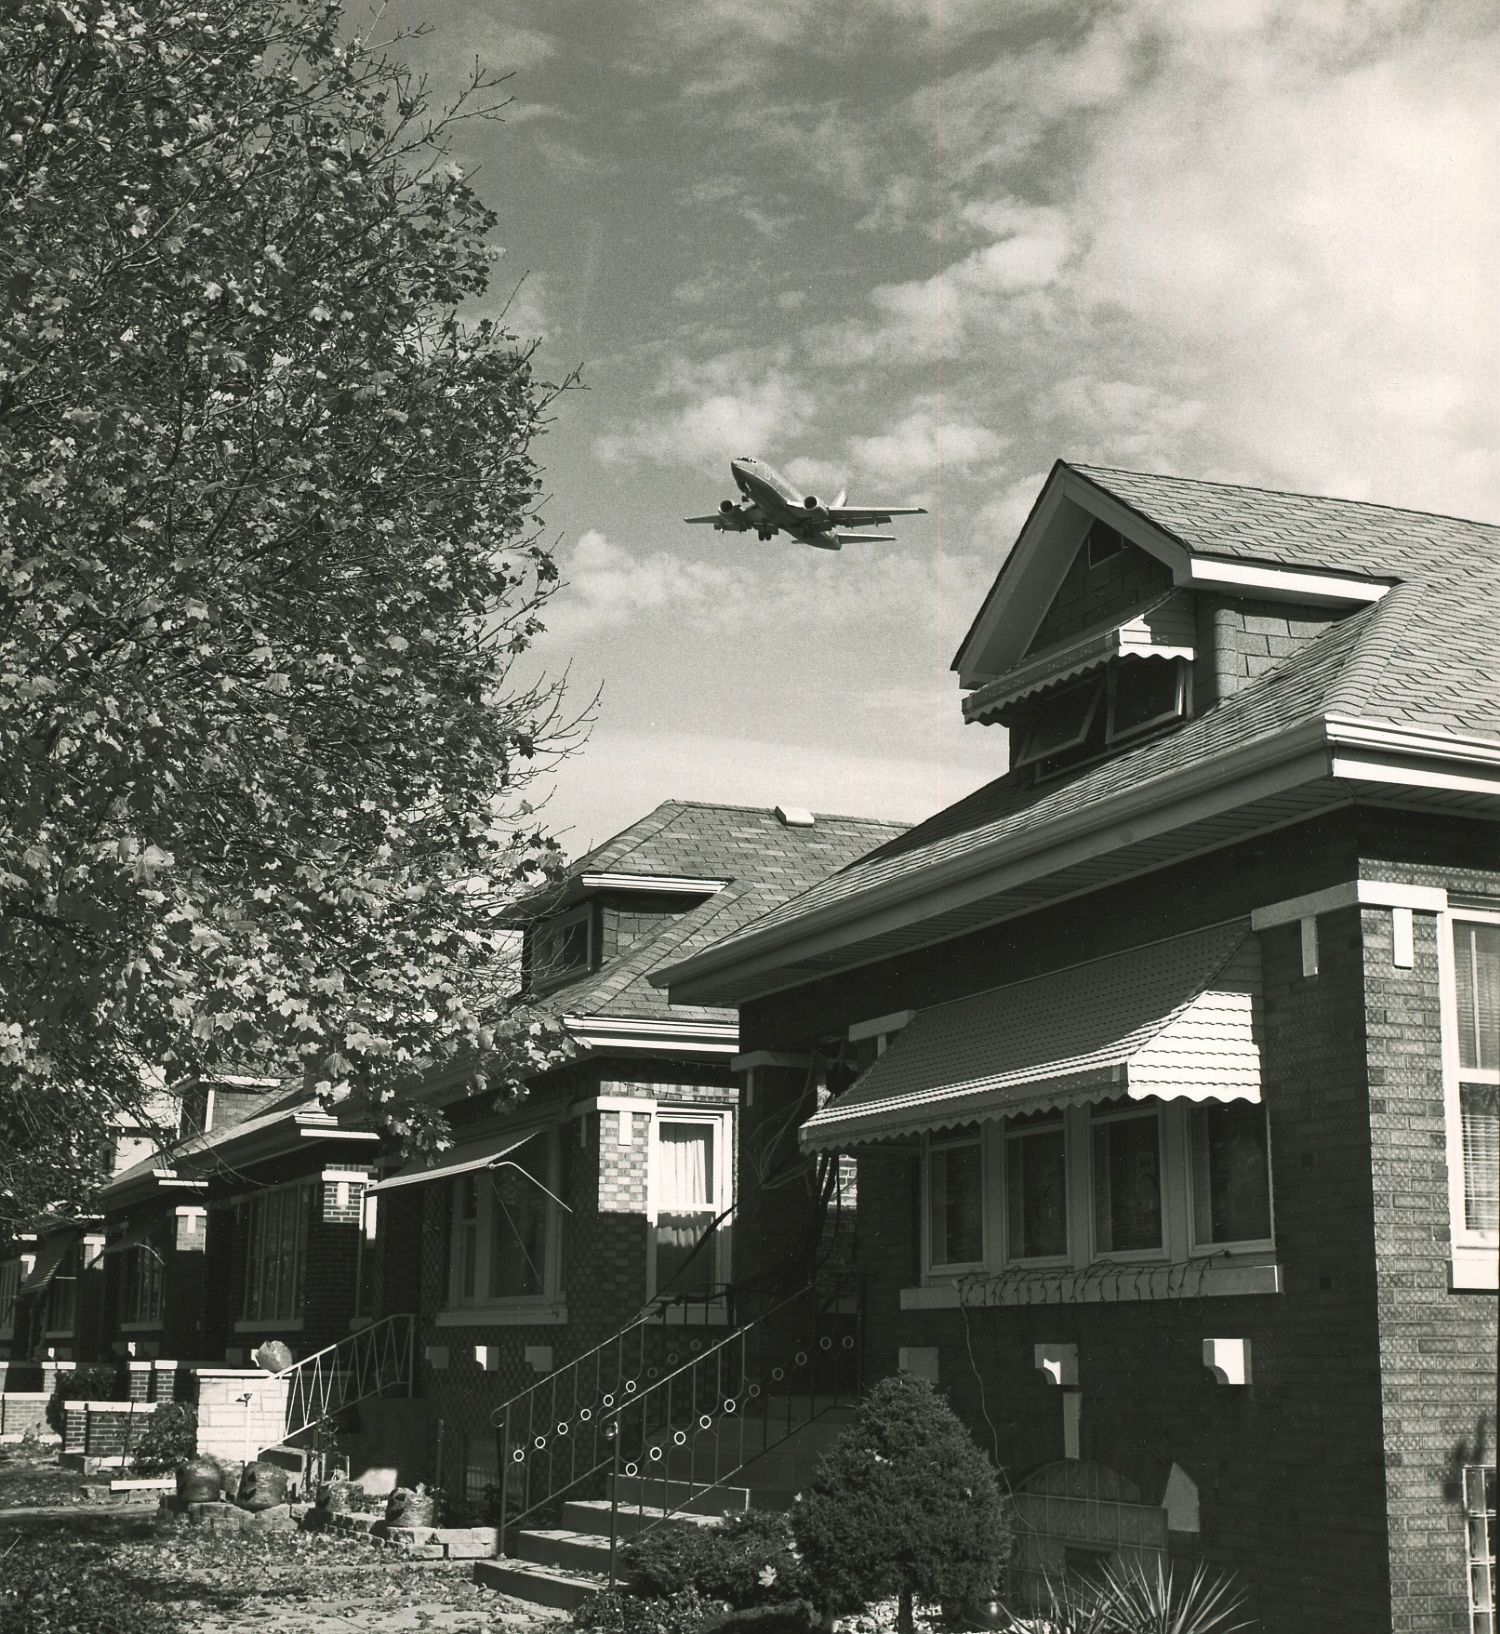 Over the Chicago Bungalows